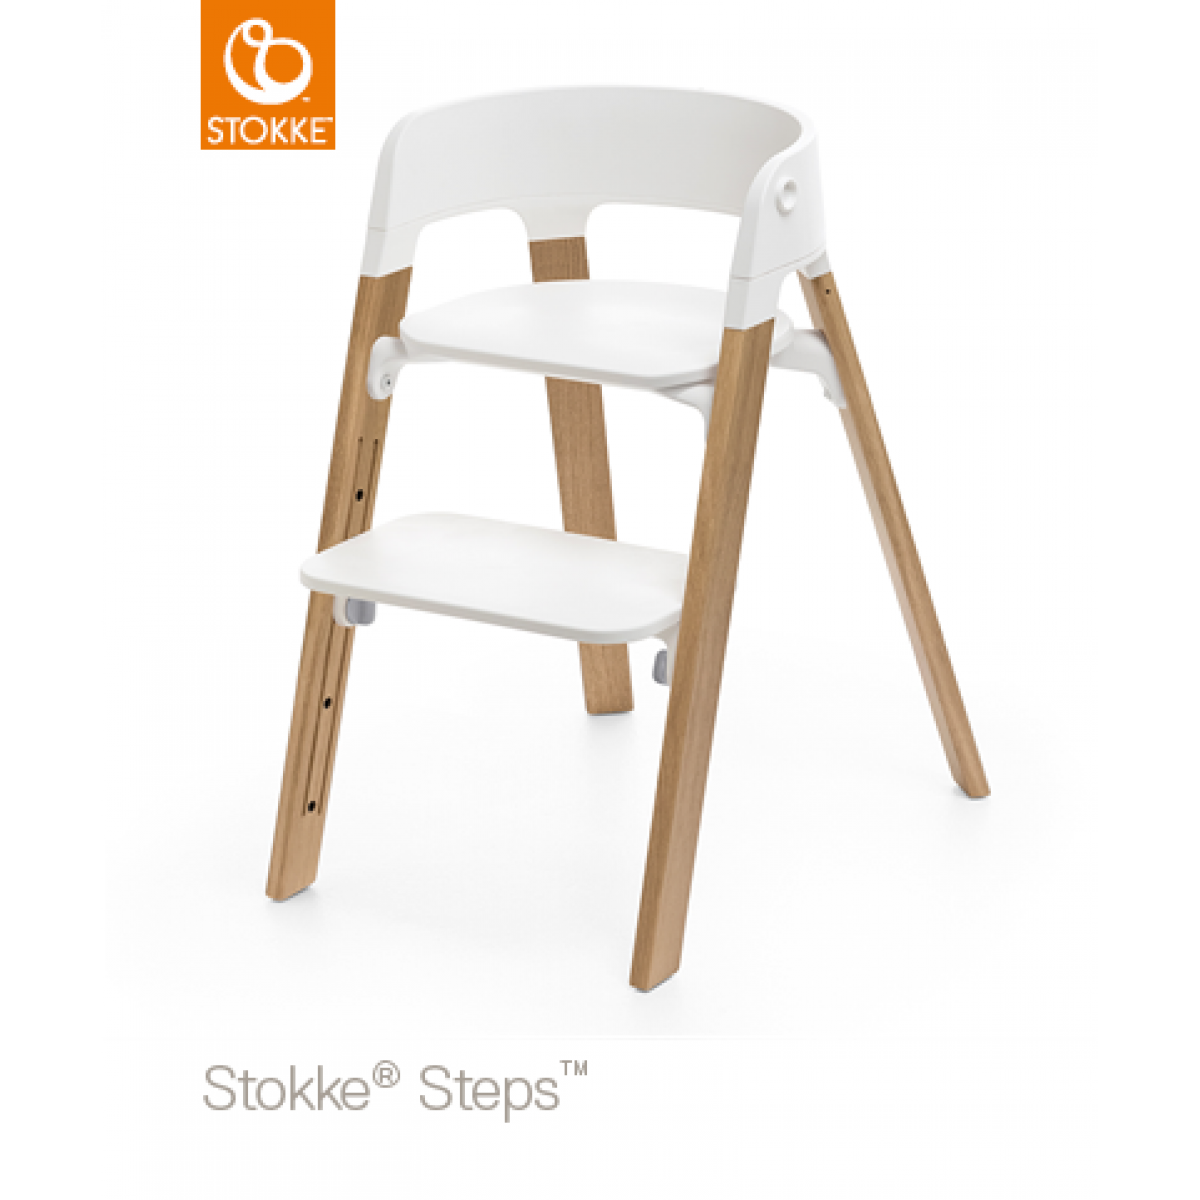 stokke steps oak wood eiche natur. Black Bedroom Furniture Sets. Home Design Ideas